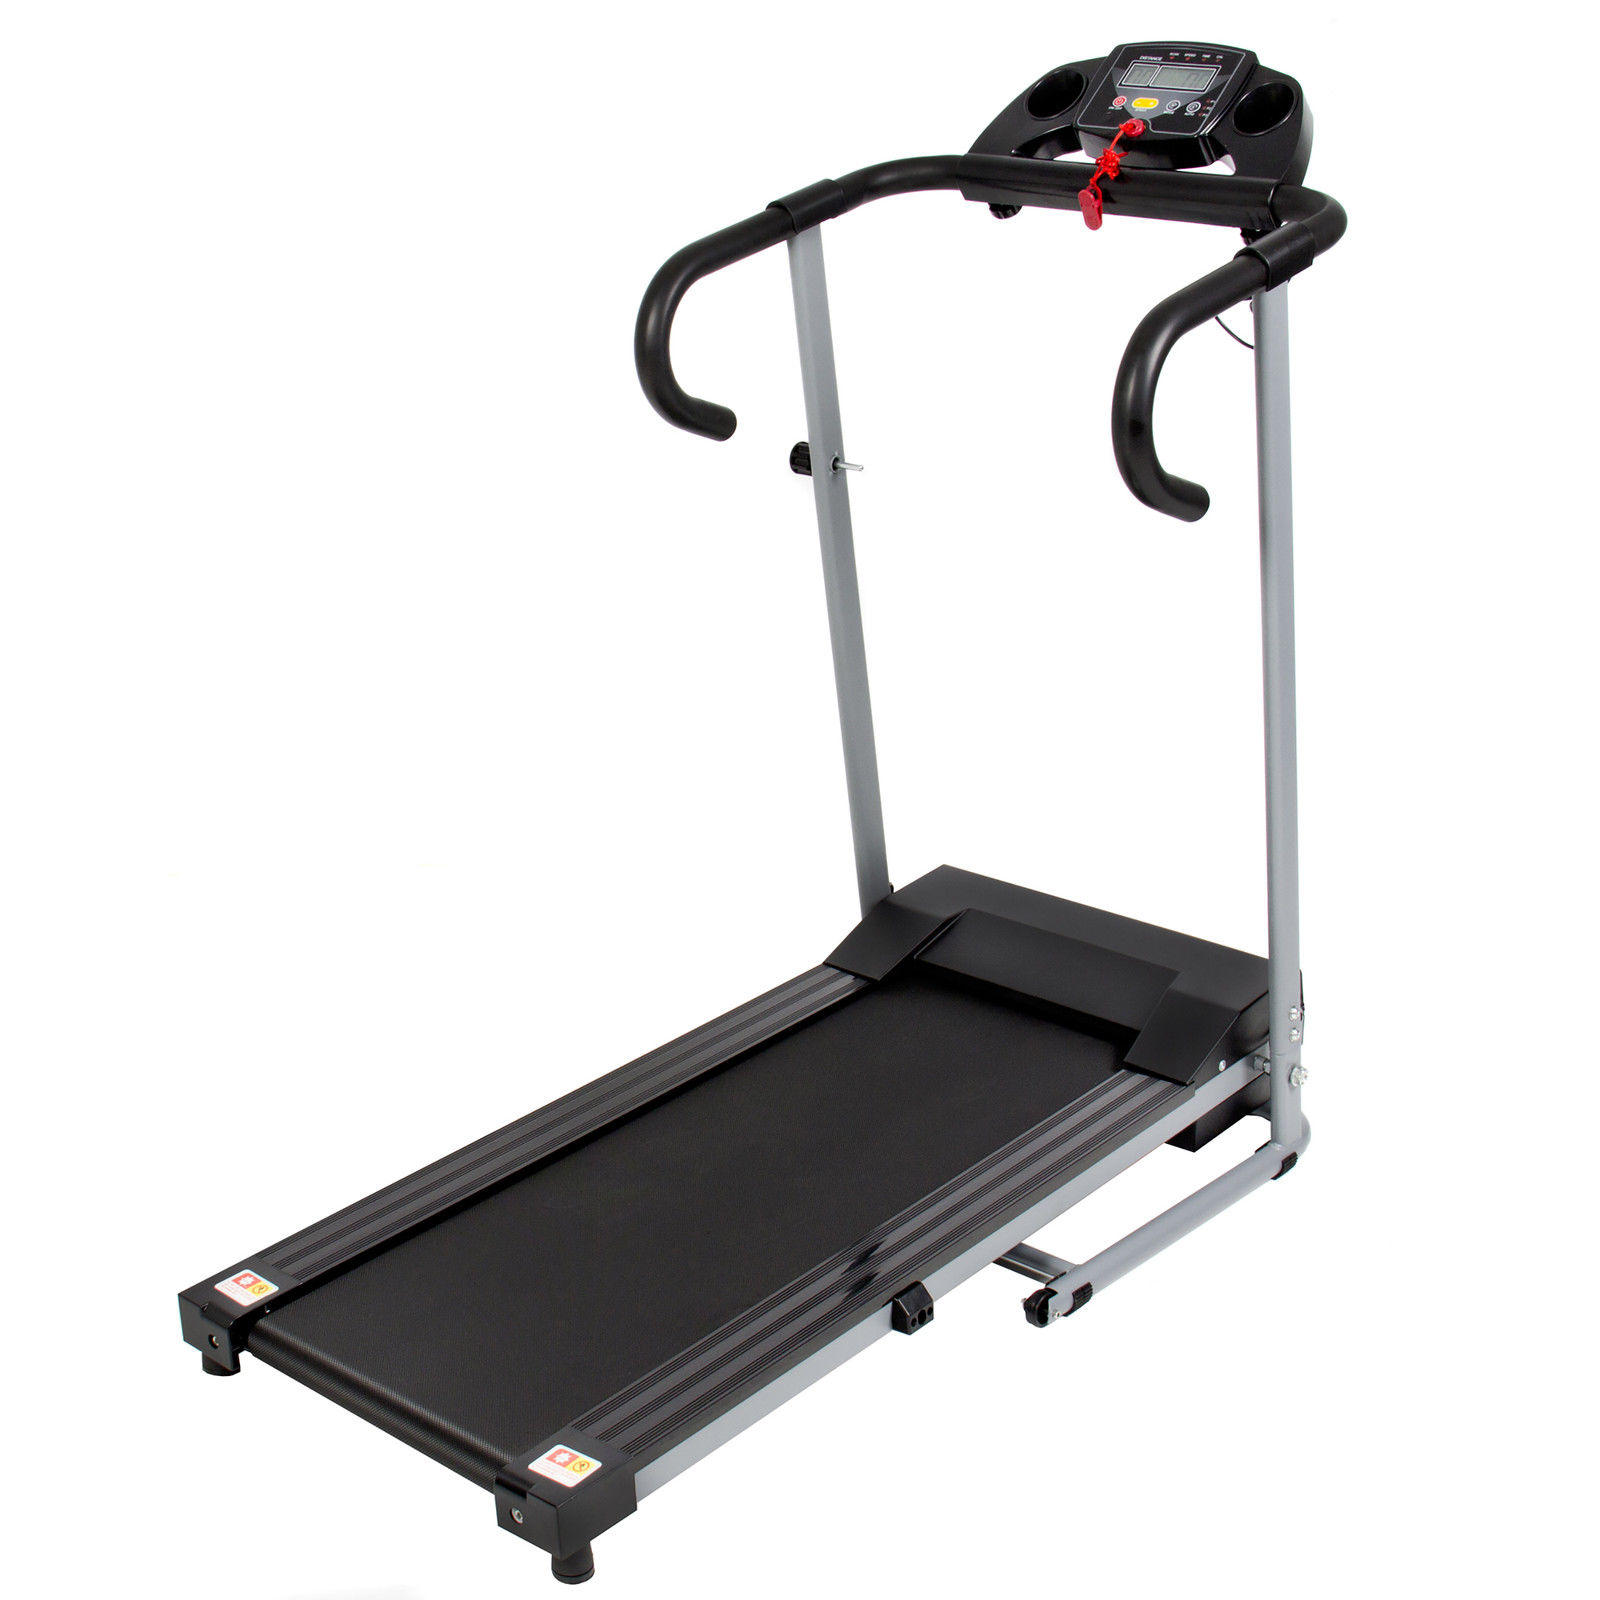 500W Portable Folding Electric Motorized Treadmill Running Machine